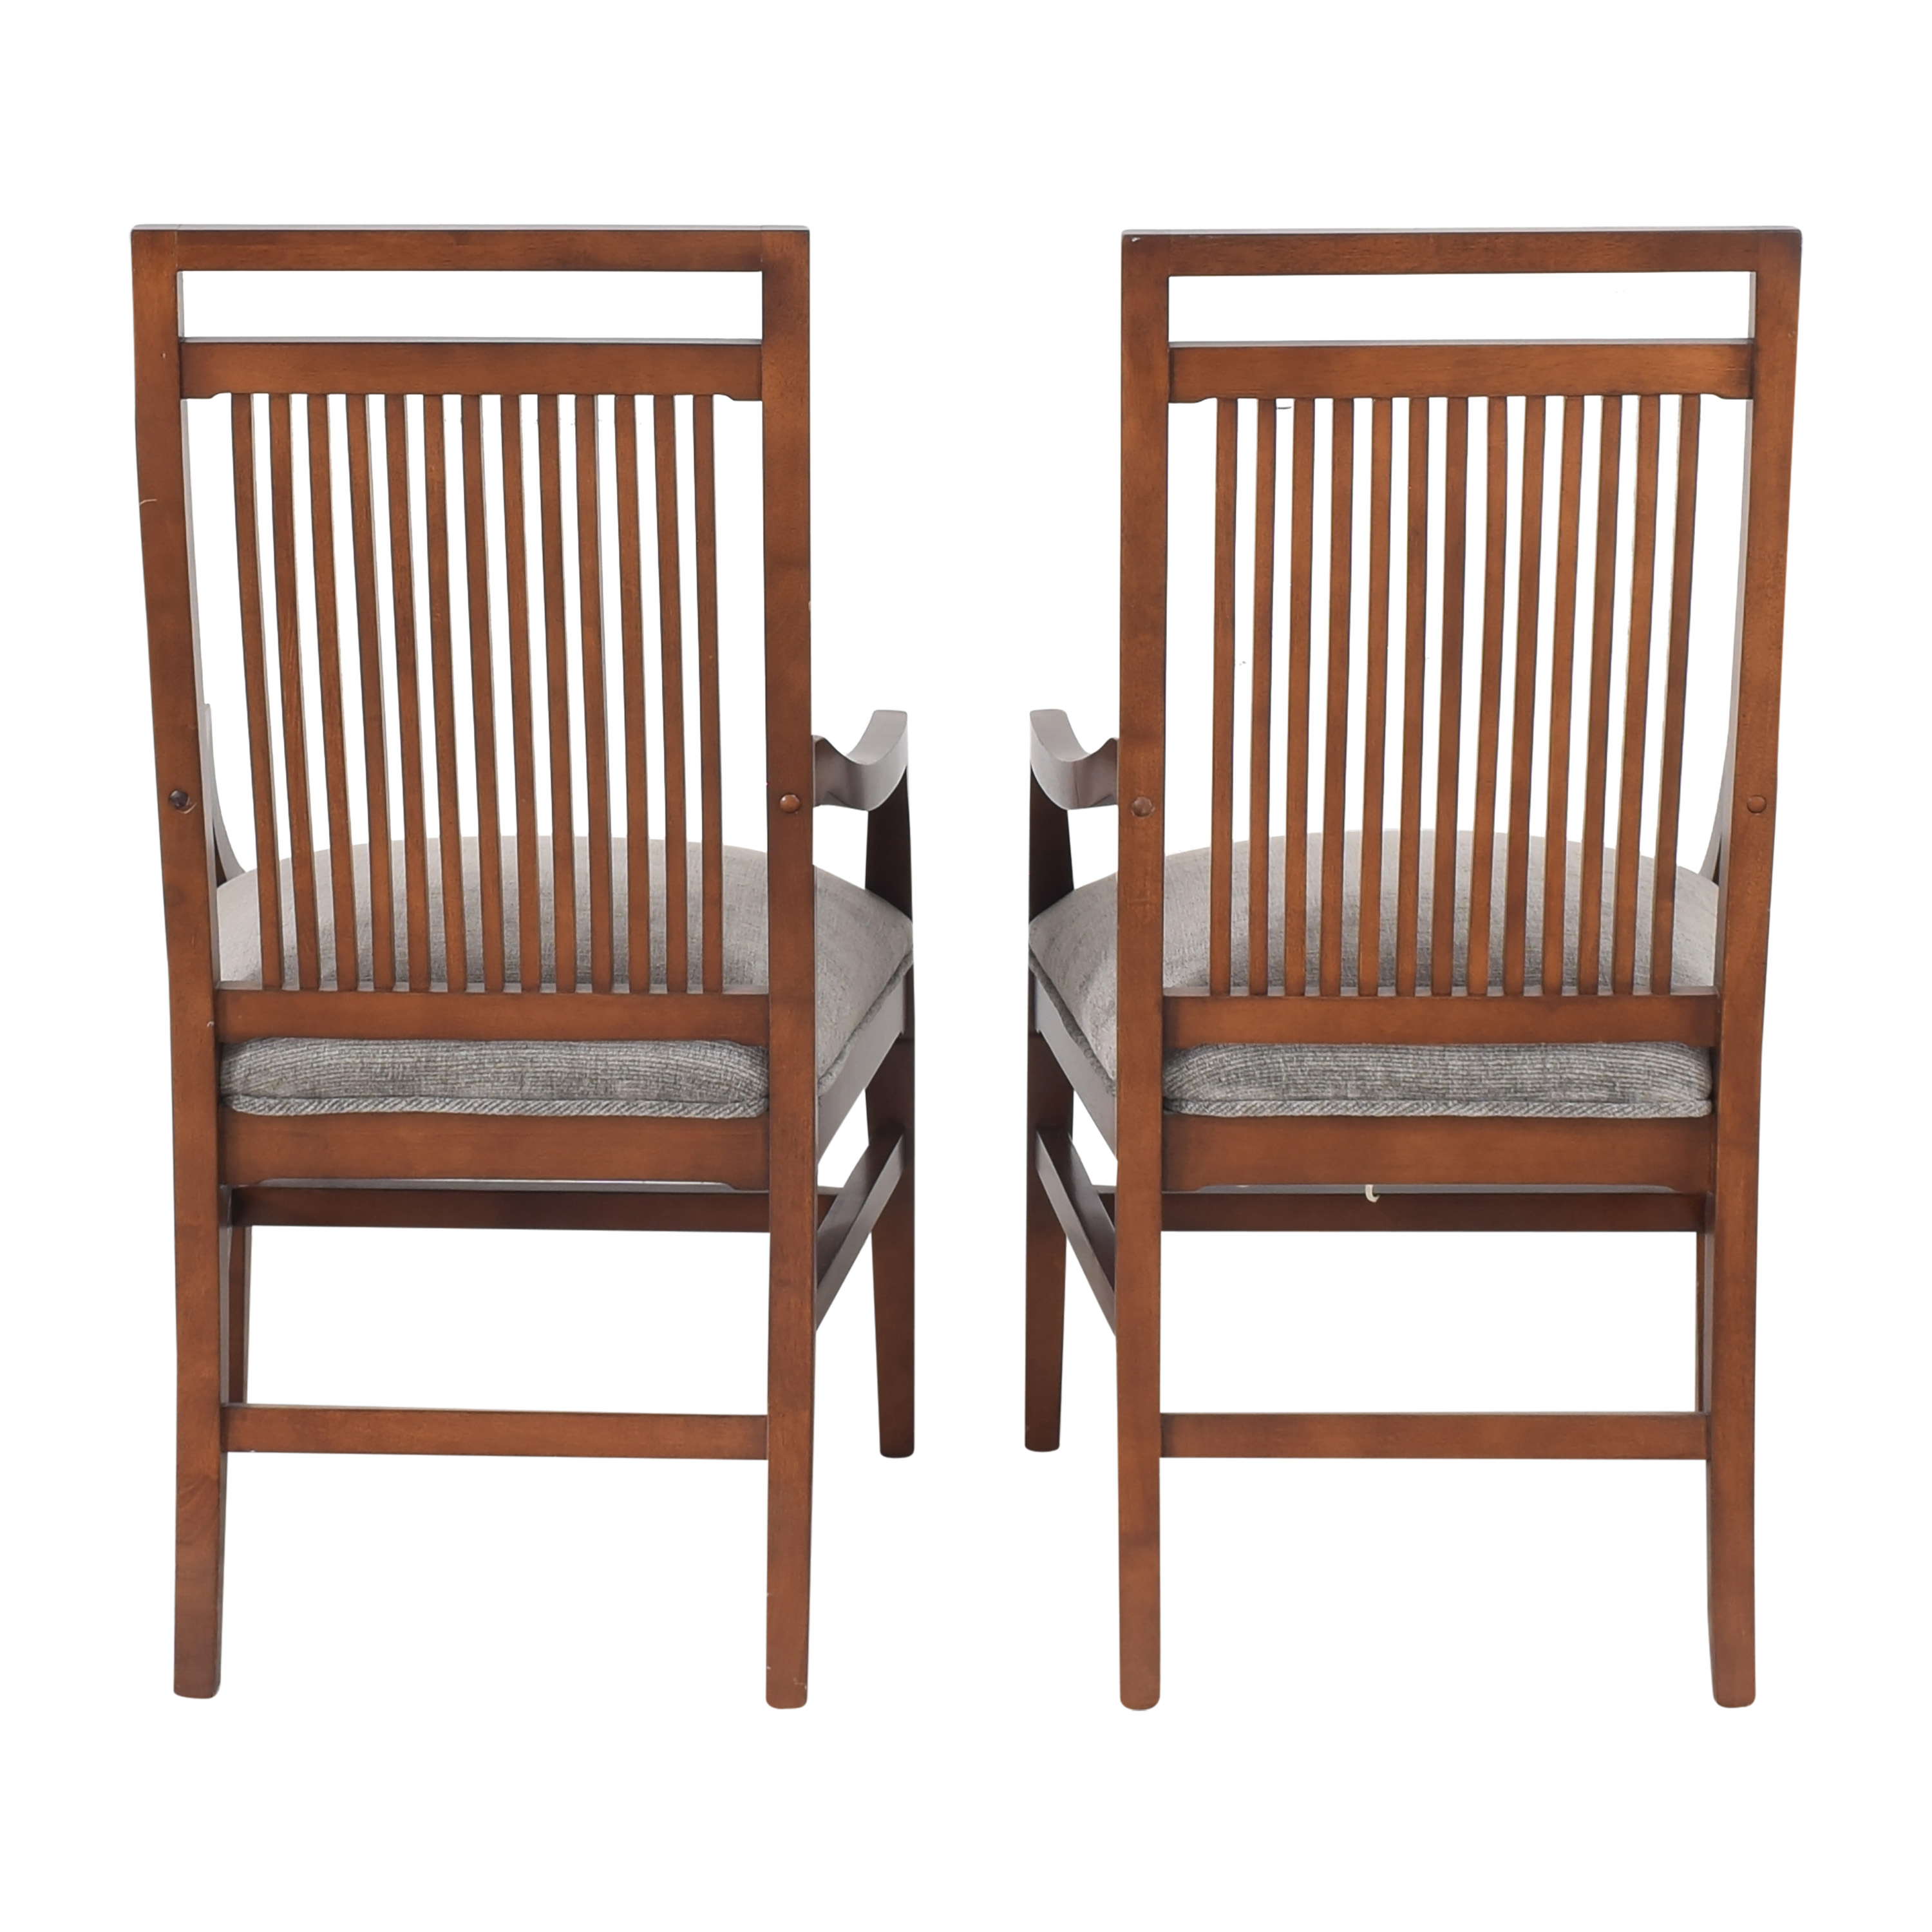 Raymour & Flanigan Raymour & Flanigan Dining Armchairs by Bernhardt dimensions